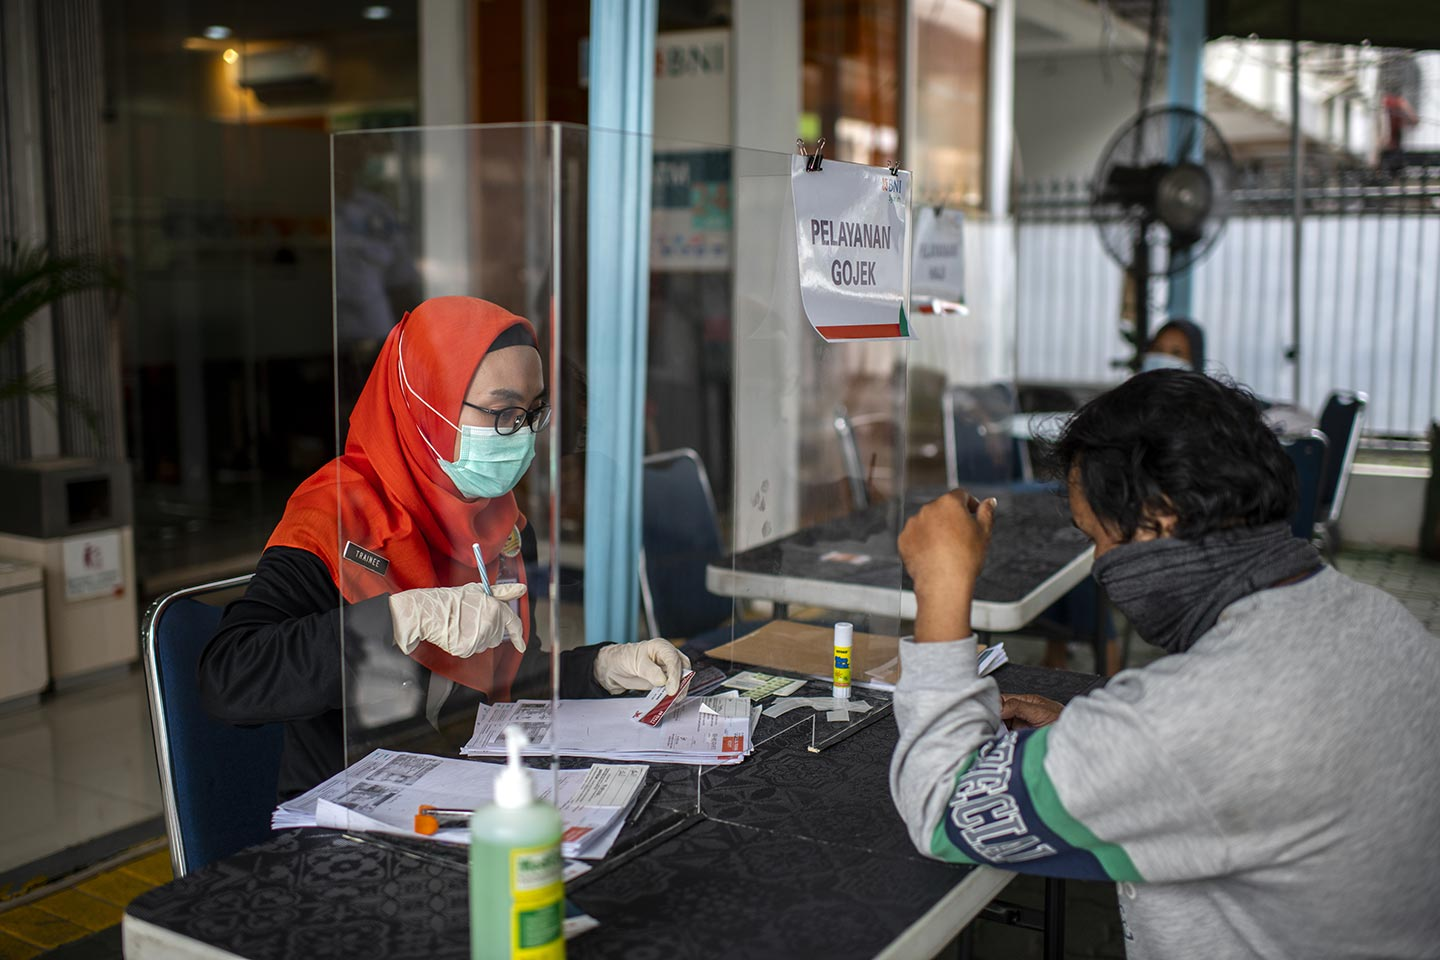 Bank officer (left) serving to customer in front of the bank using protective glass during Covid-19 outbreak in South Jakarta, Indonesia on 31 March, 2020. Almost all bank in Jakarta implement a social distancing for customer services. Credit: UNICEF/2020/Arimacs Wilander